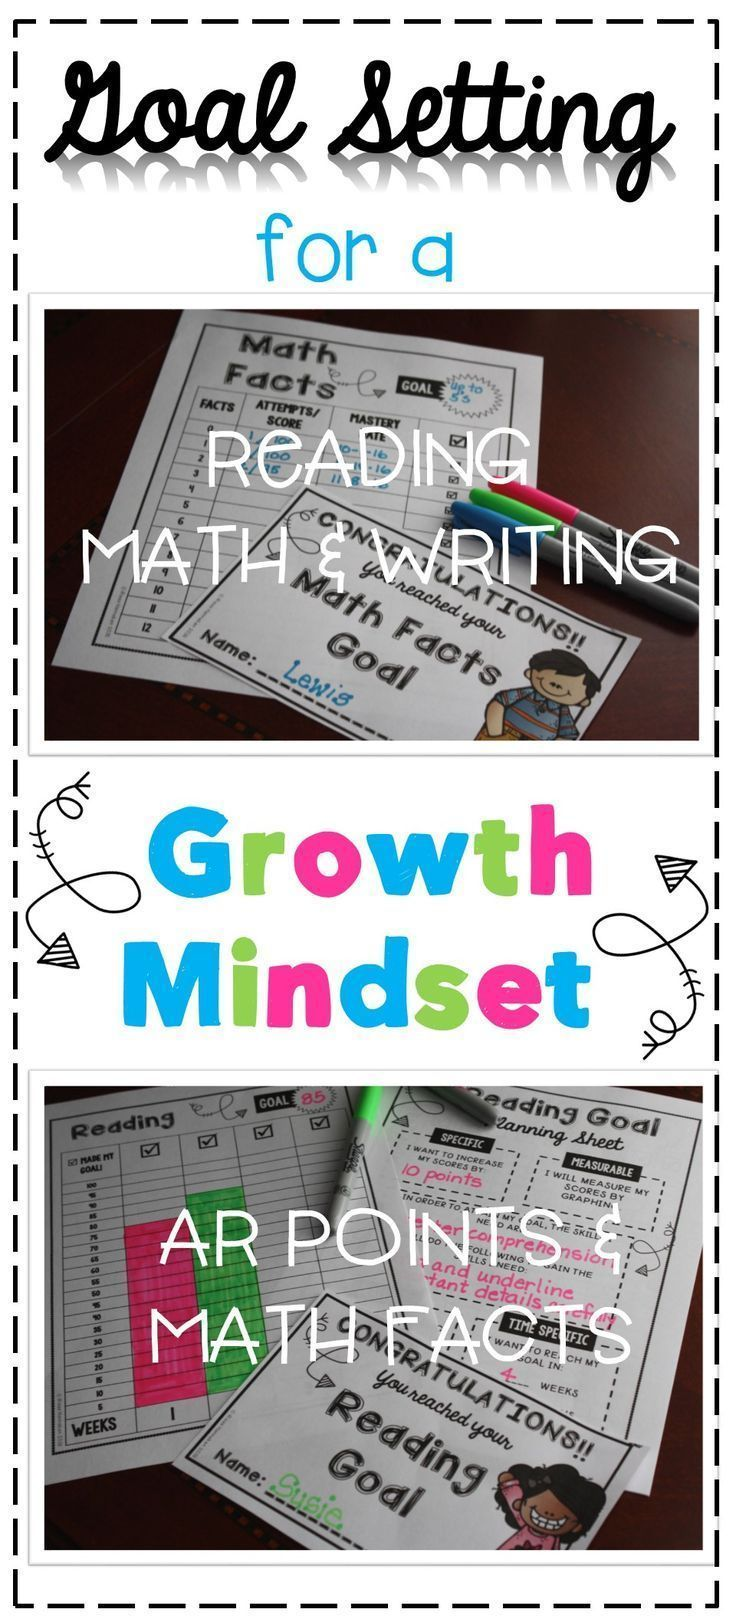 Have you implemented goal setting for students in your classroom? Too intimidating? No worries, Goal Setting for a Growth Mindset takes care of the planning and progress monitoring for you! Just print these goal worksheets and they are ready to go! Reading, writing, and math goal setting included AND cute goal achieved certificates to celebrate with! Click here to see more!